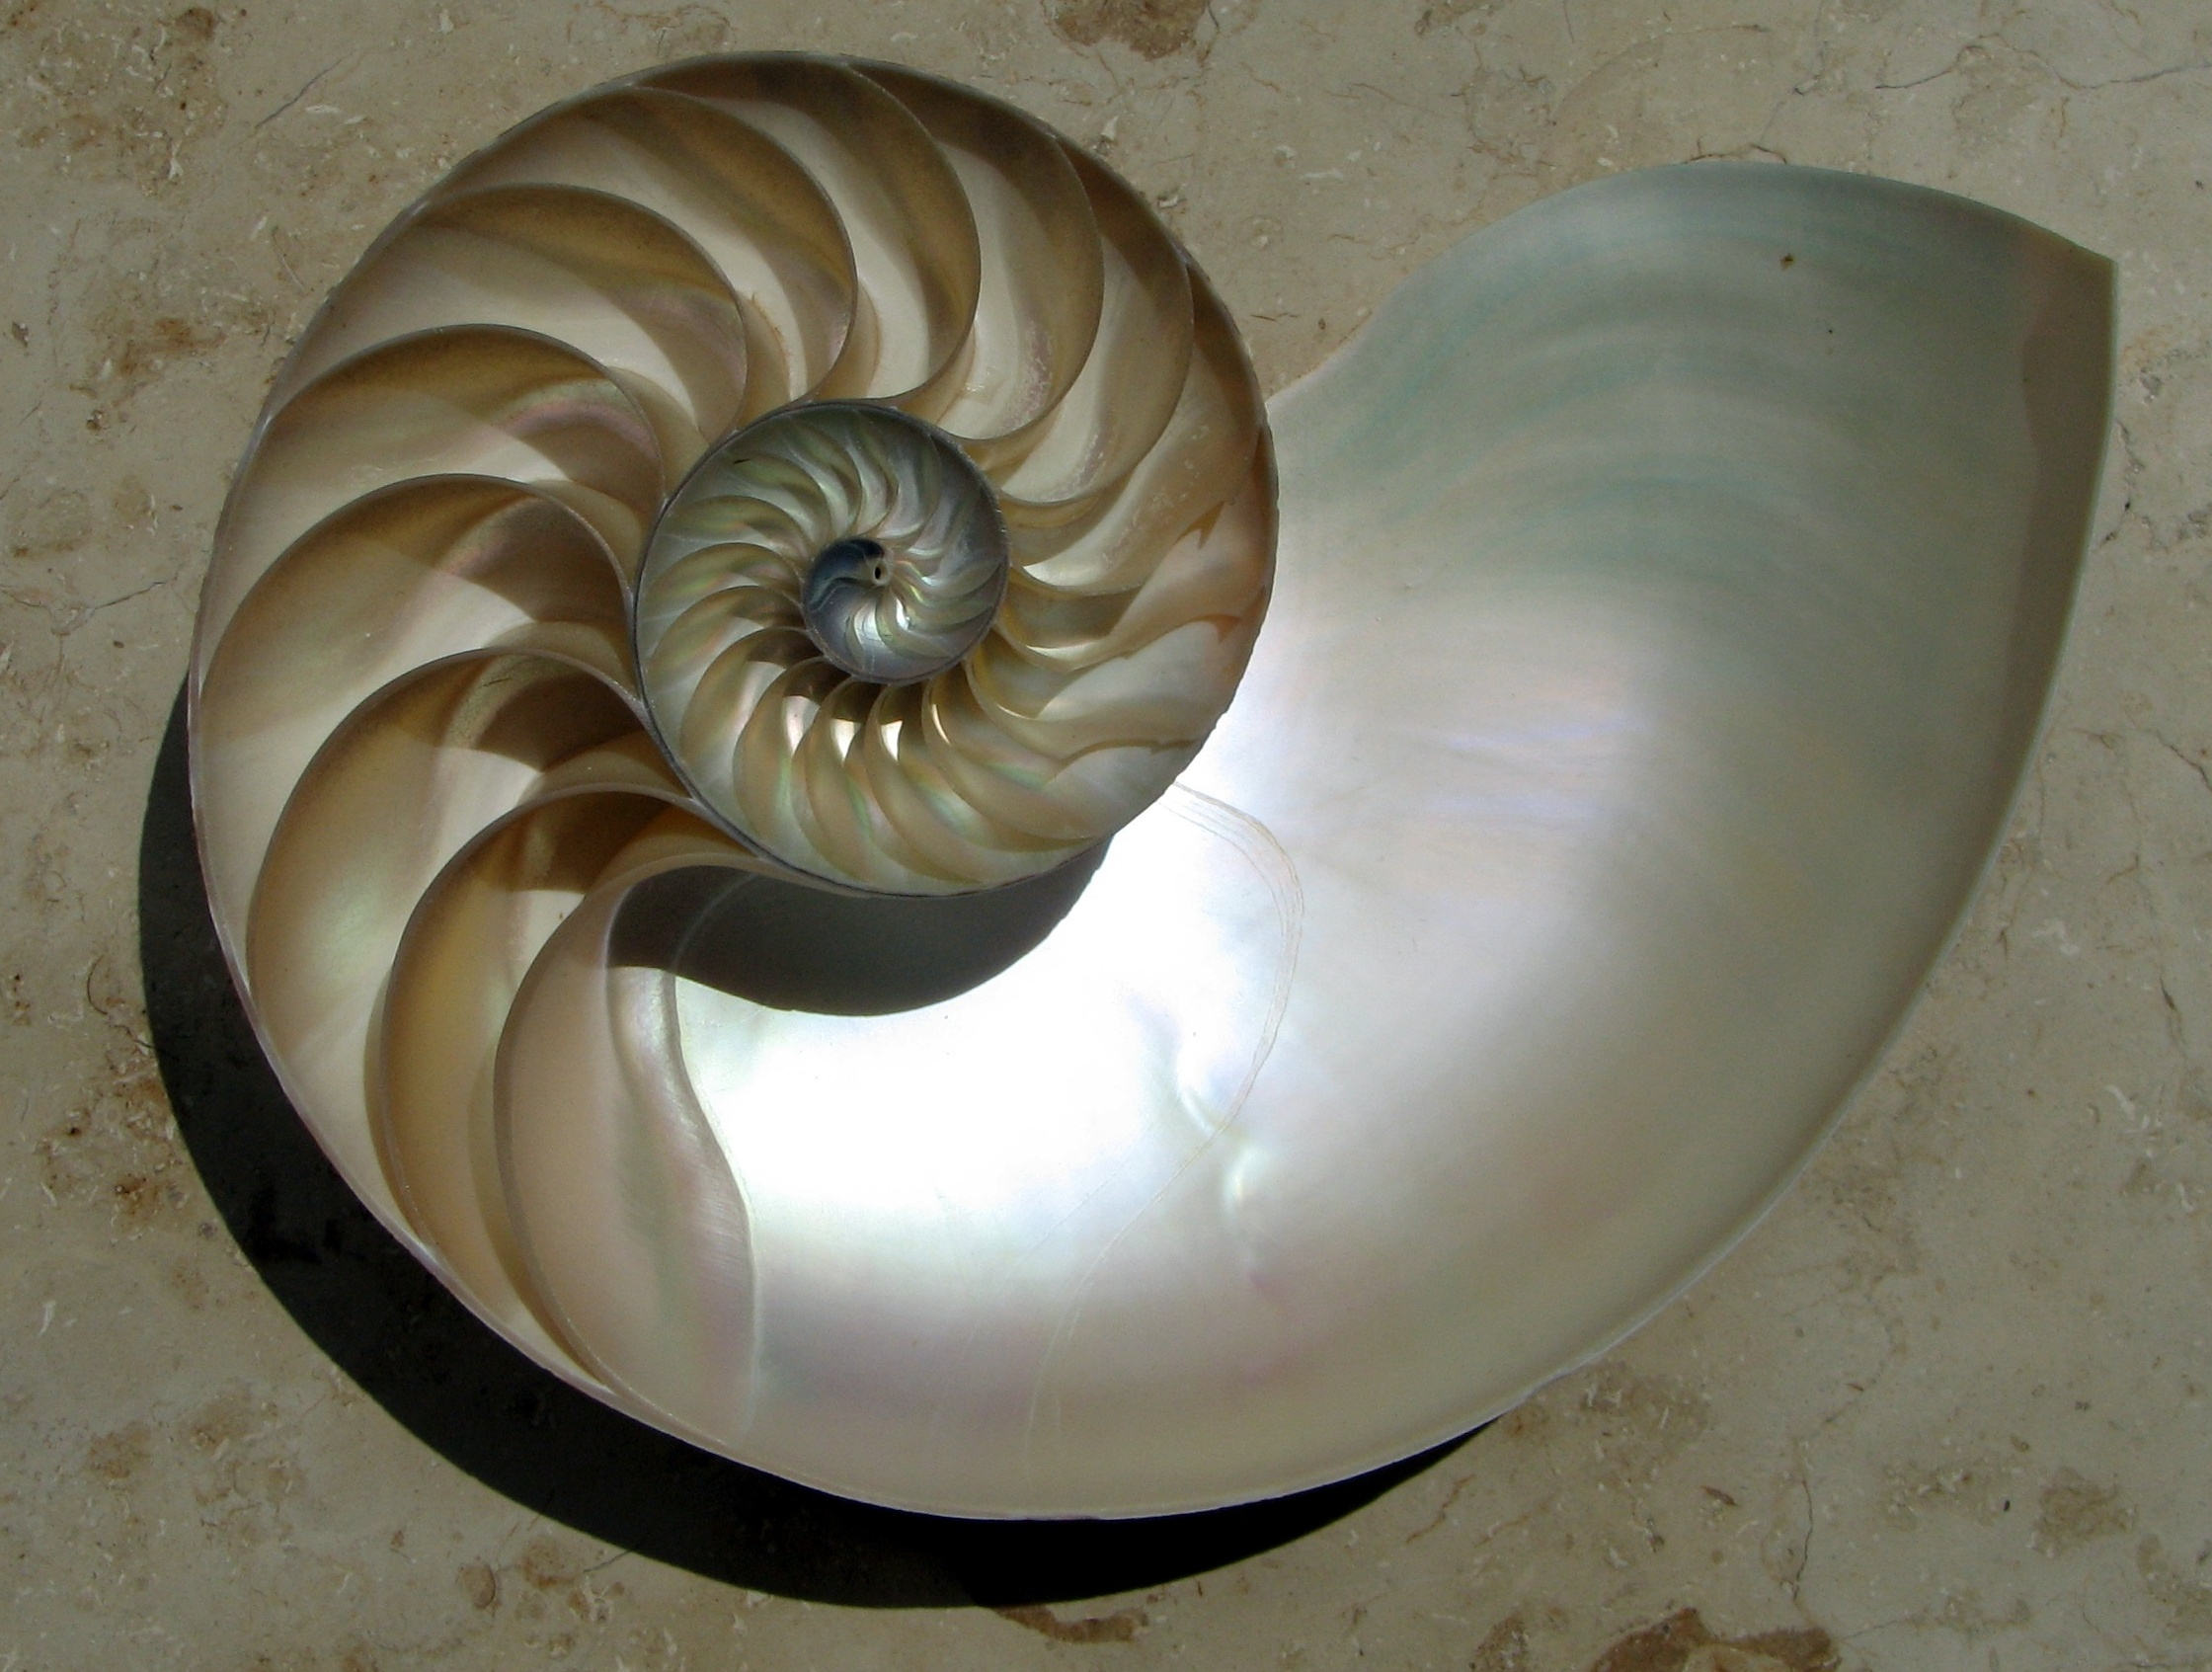 Inside of Nautilus shell by Chris 73